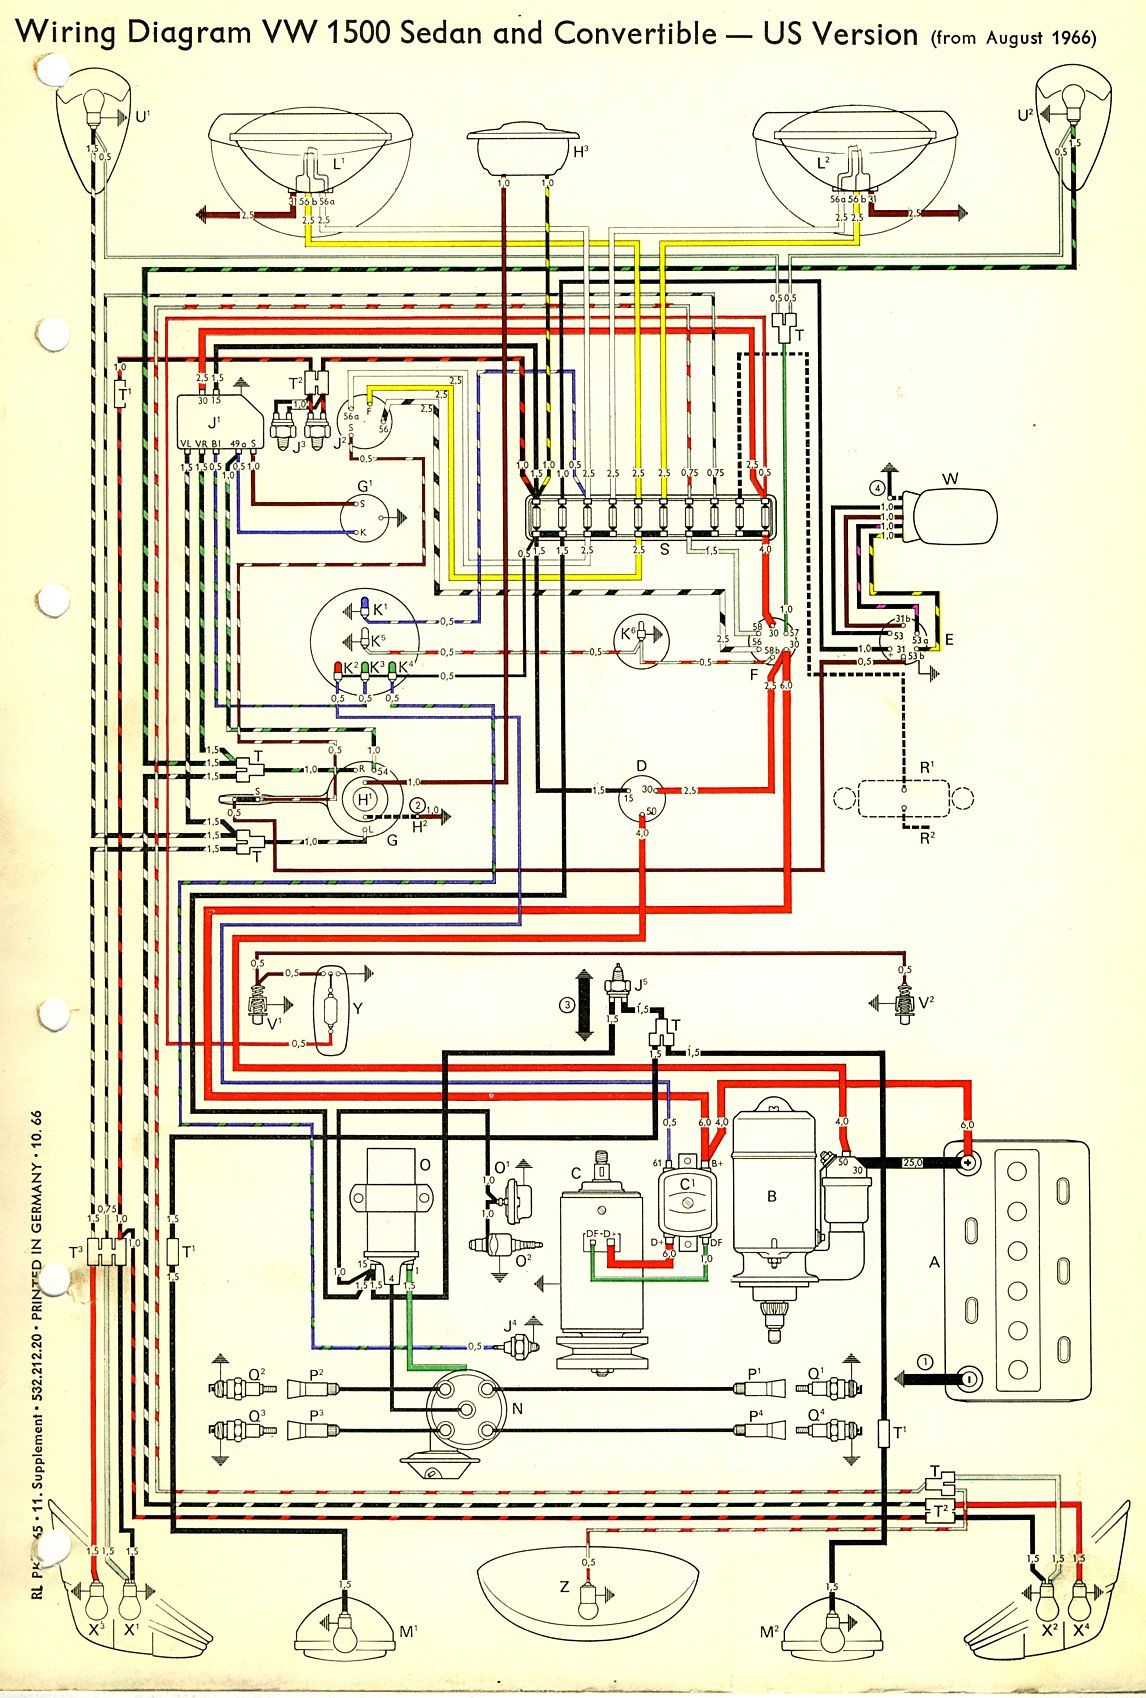 1adf990c0efb617c789fdd21338448b0 1967 beetle wiring diagram (usa) thegoldenbug com best 1967 vw 1969 vw beetle wiring diagram at bayanpartner.co